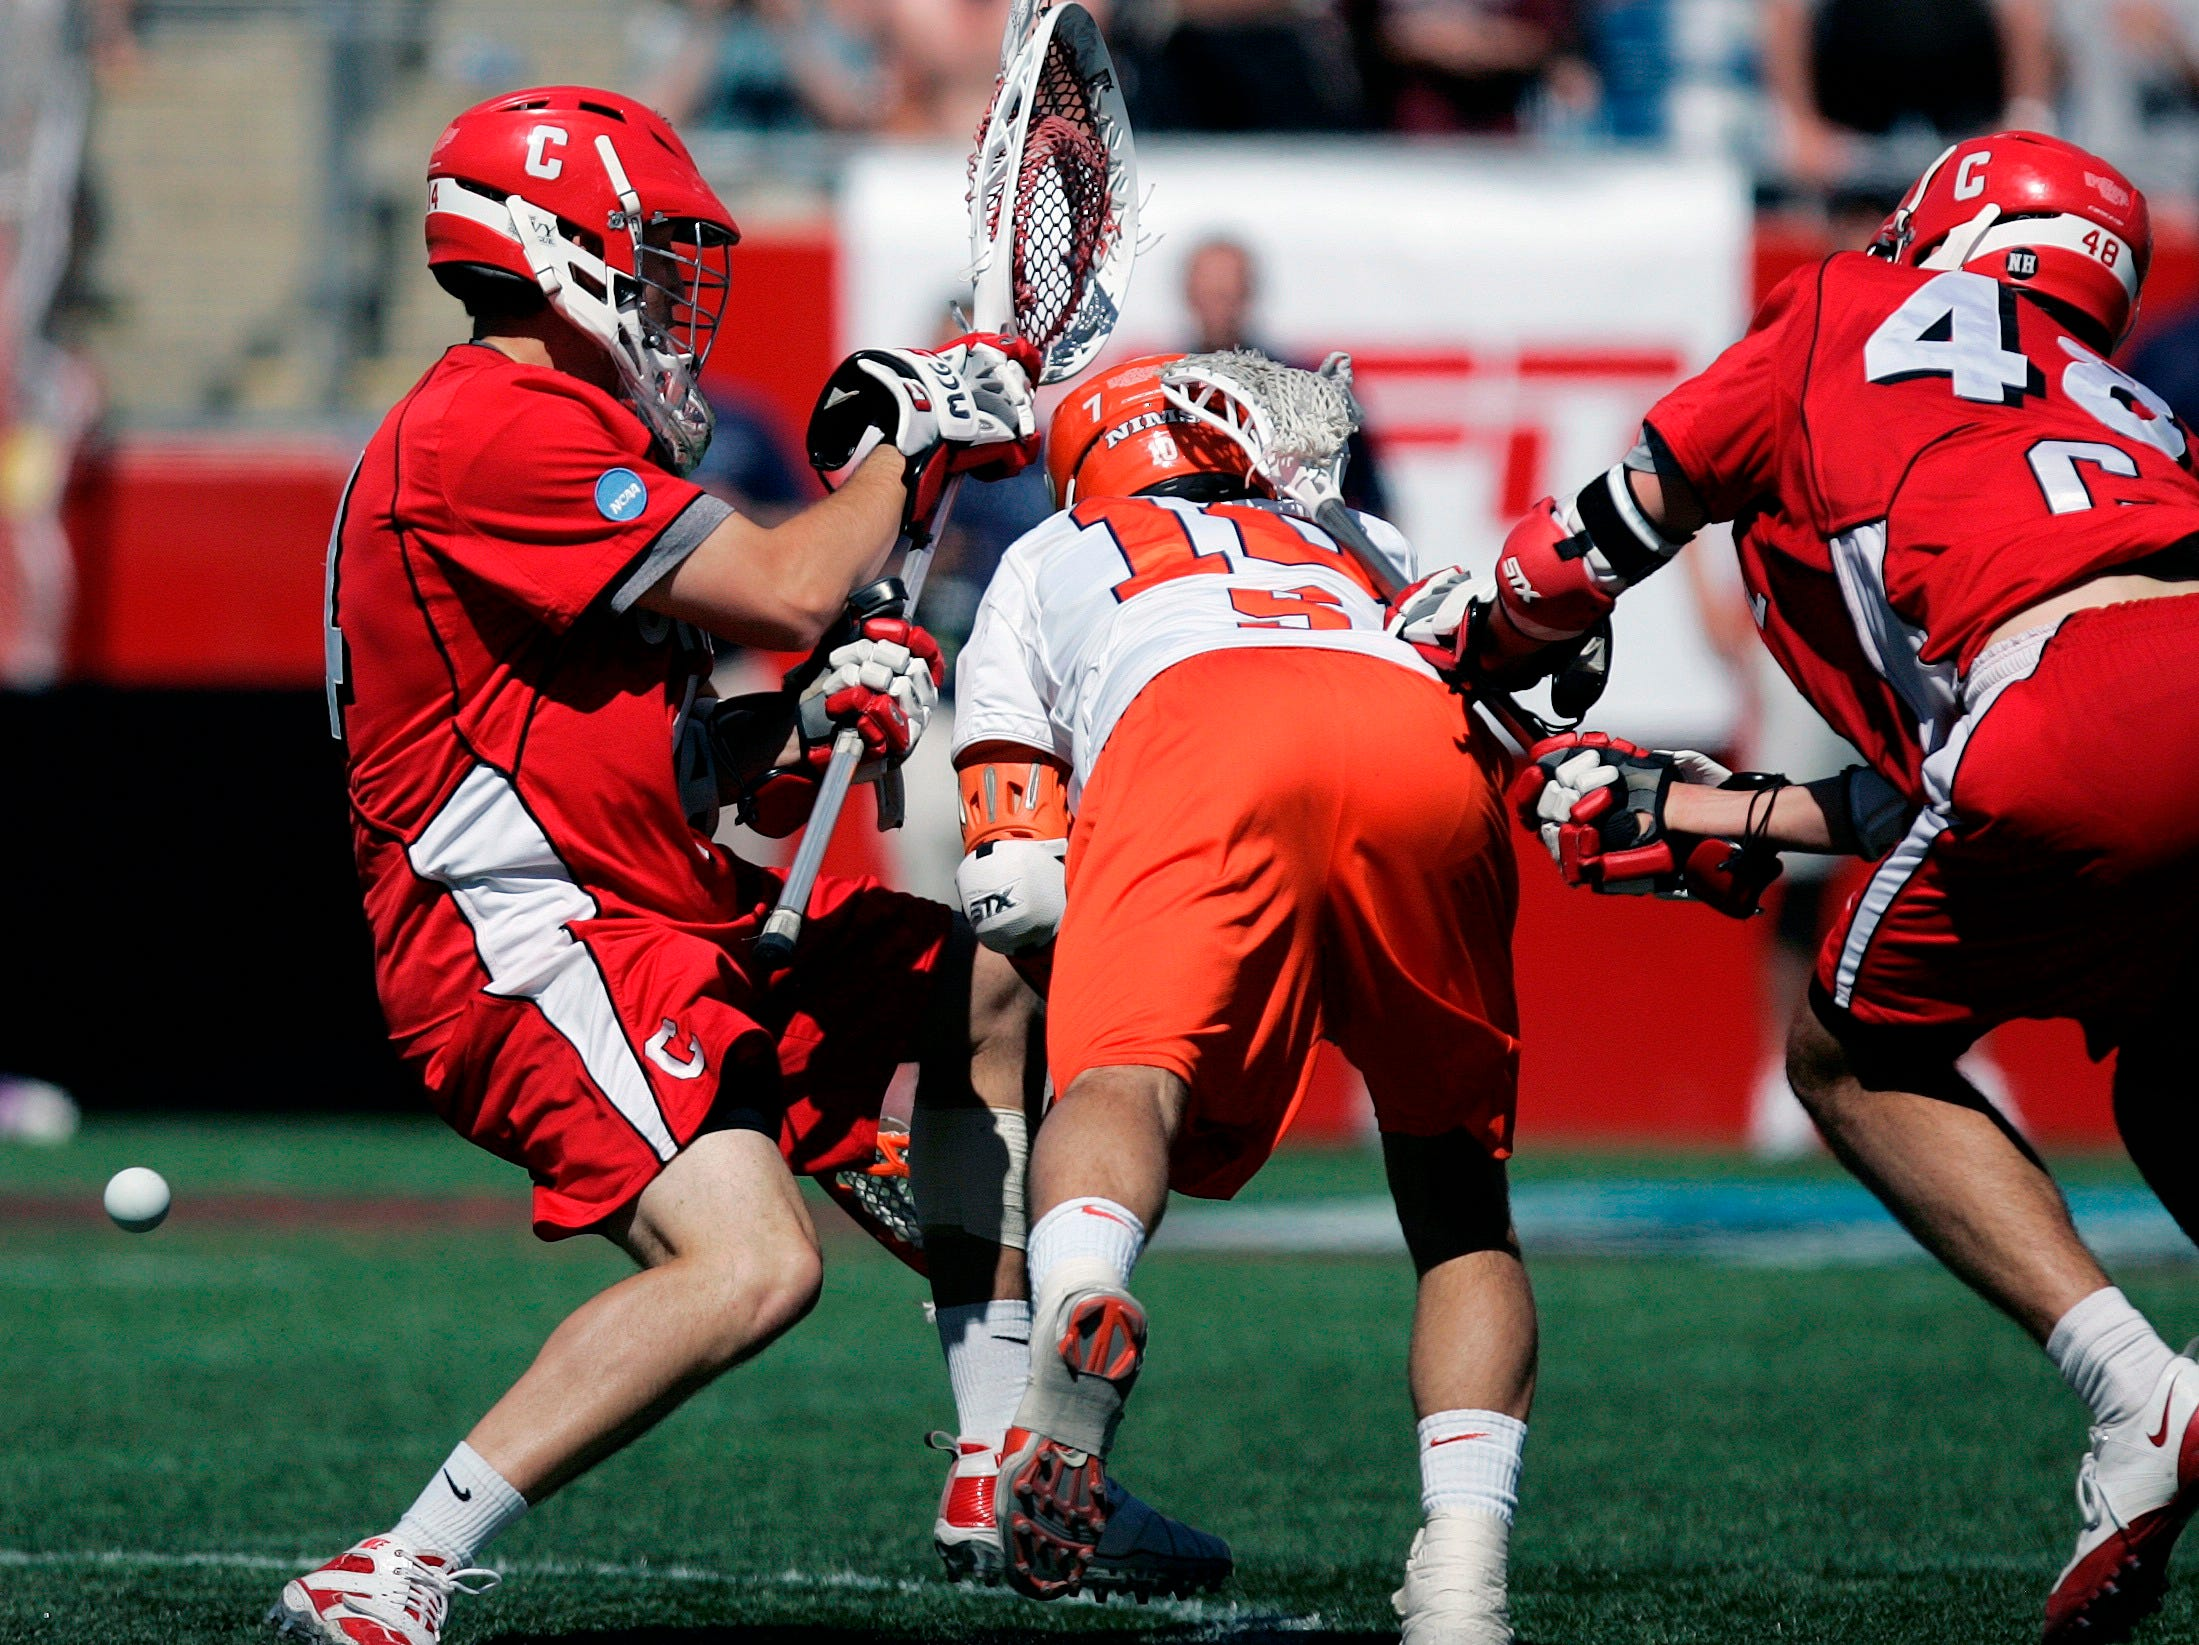 Syracuse's Kenny Nims, center, scores the game-tying goal against Cornell goalkeeper Jake Myers, left, in the fourth quarter of an NCAA Division I men's lacrosse championship game in Foxborough, Mass., Monday, May 25, 2009. Syracuse won 10-9 in overtime.